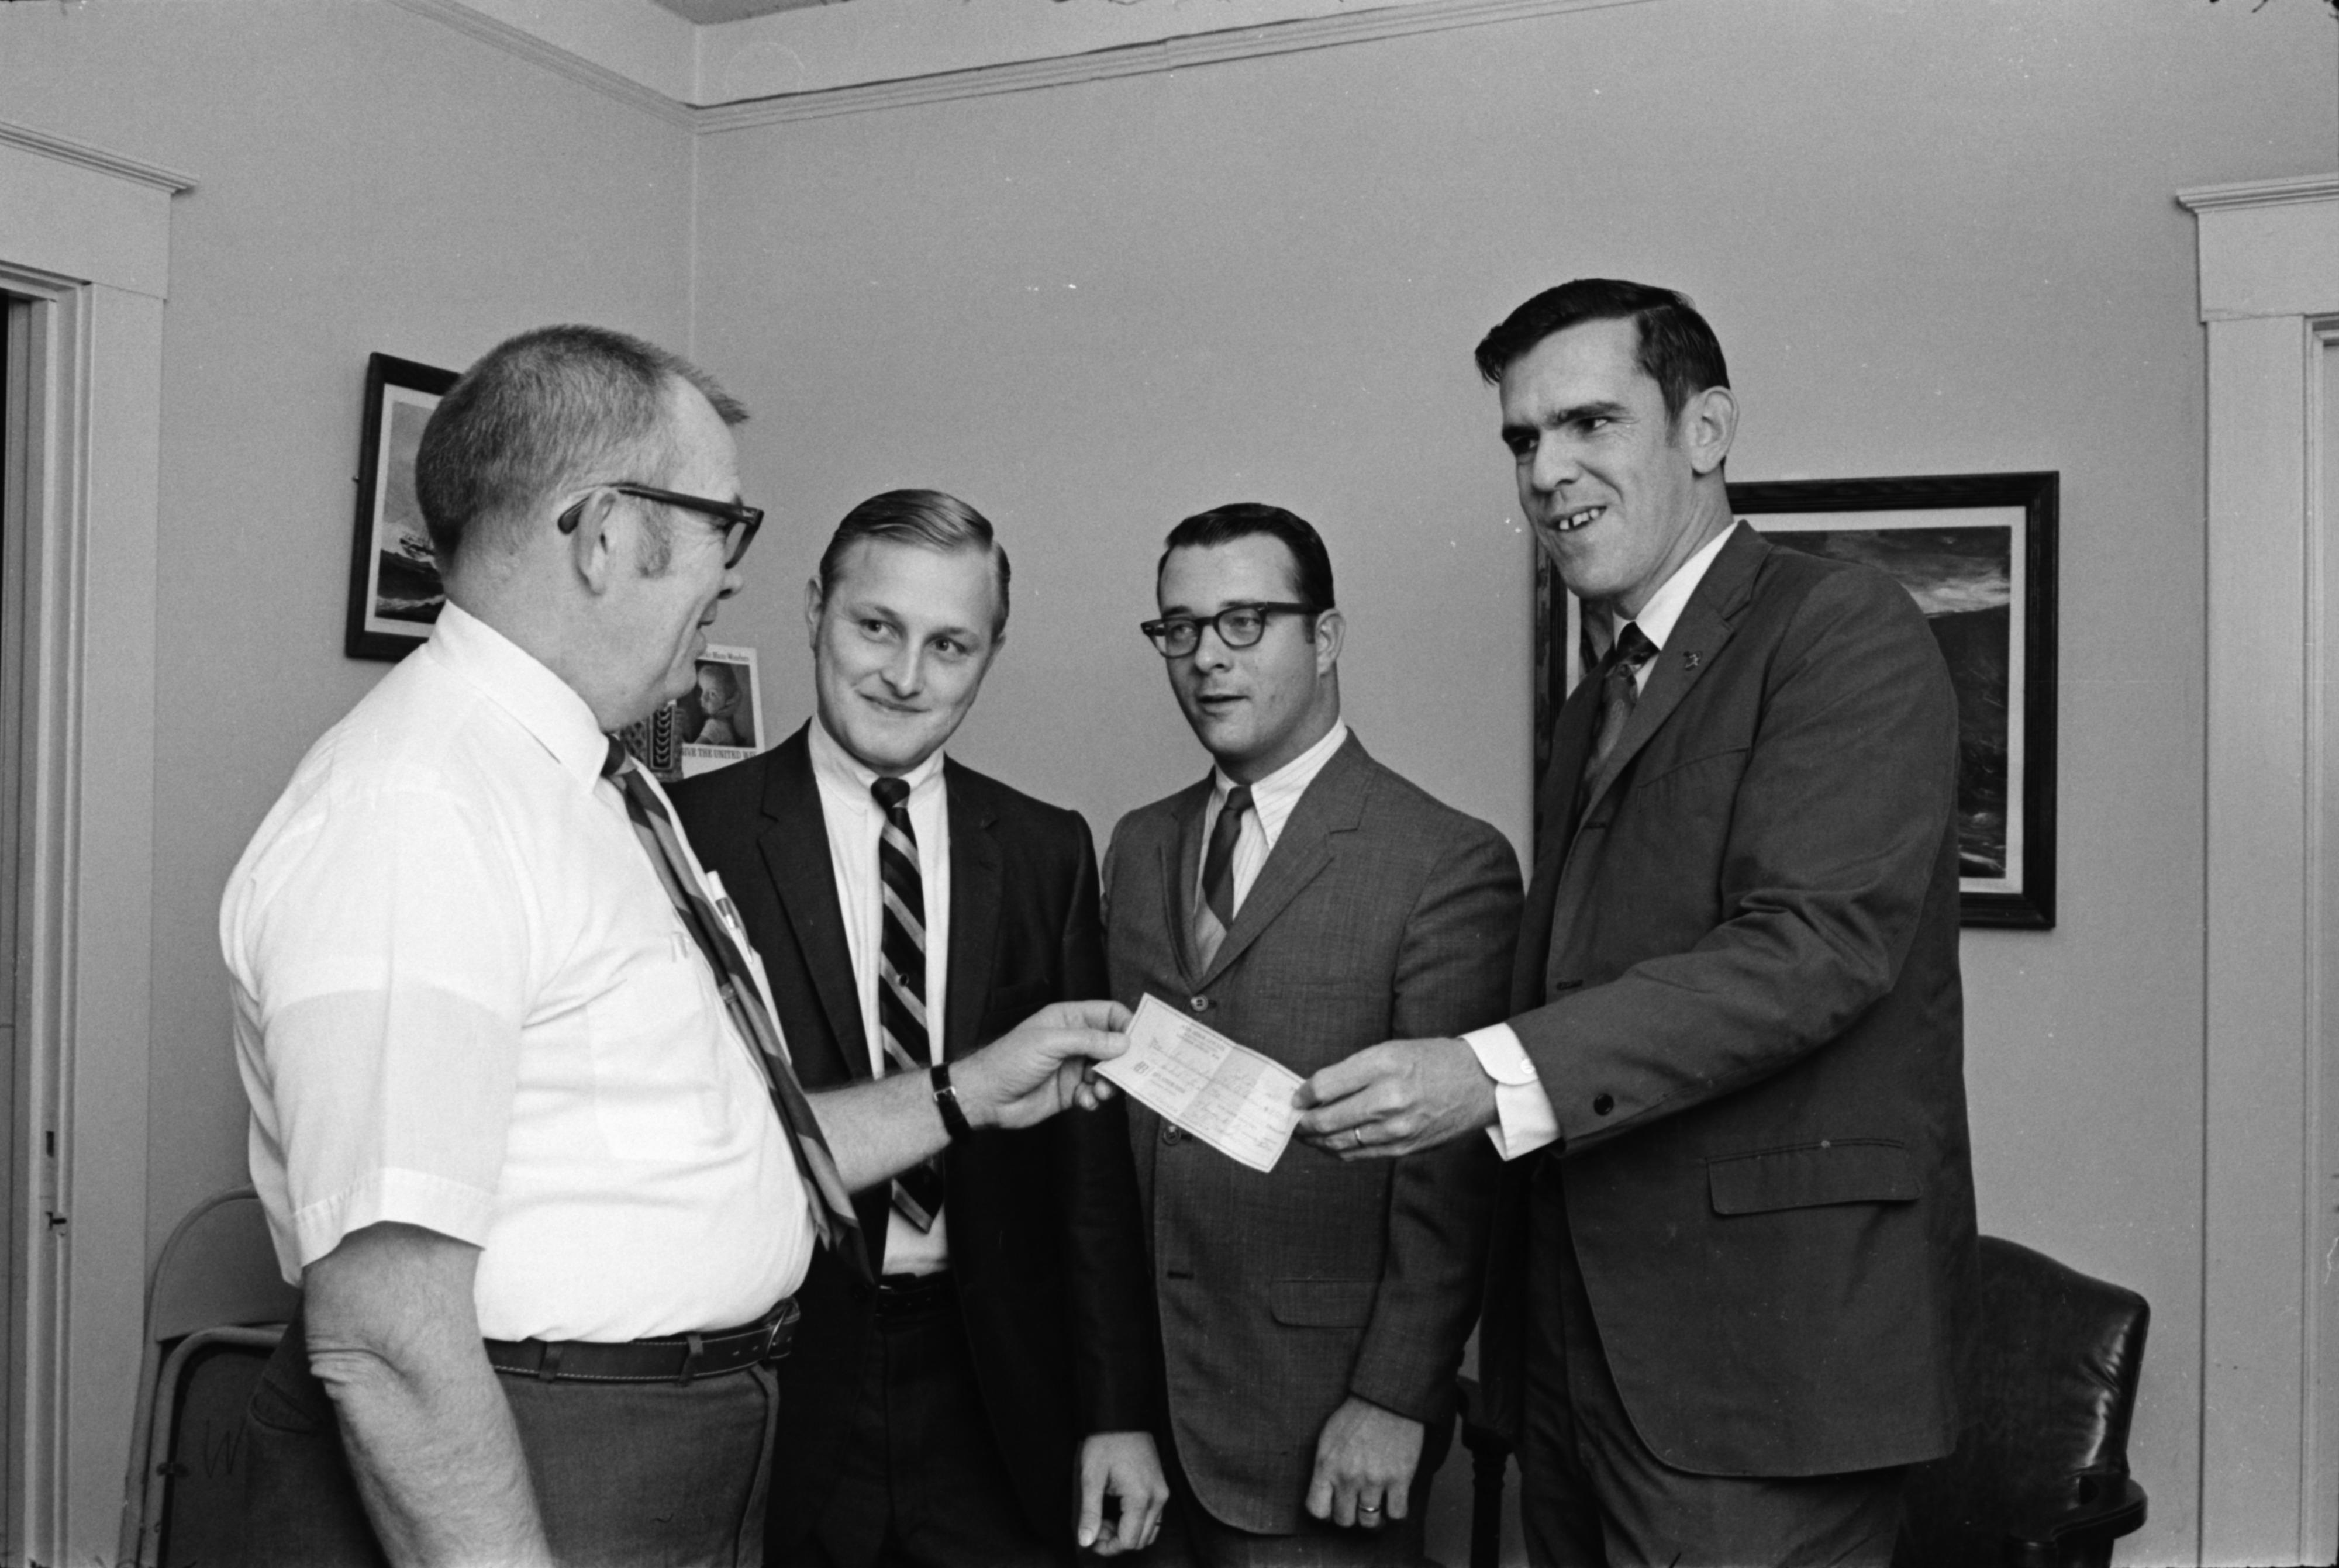 Jaycees Donate to Washtenaw Association for Retarded Children, September 1969 image